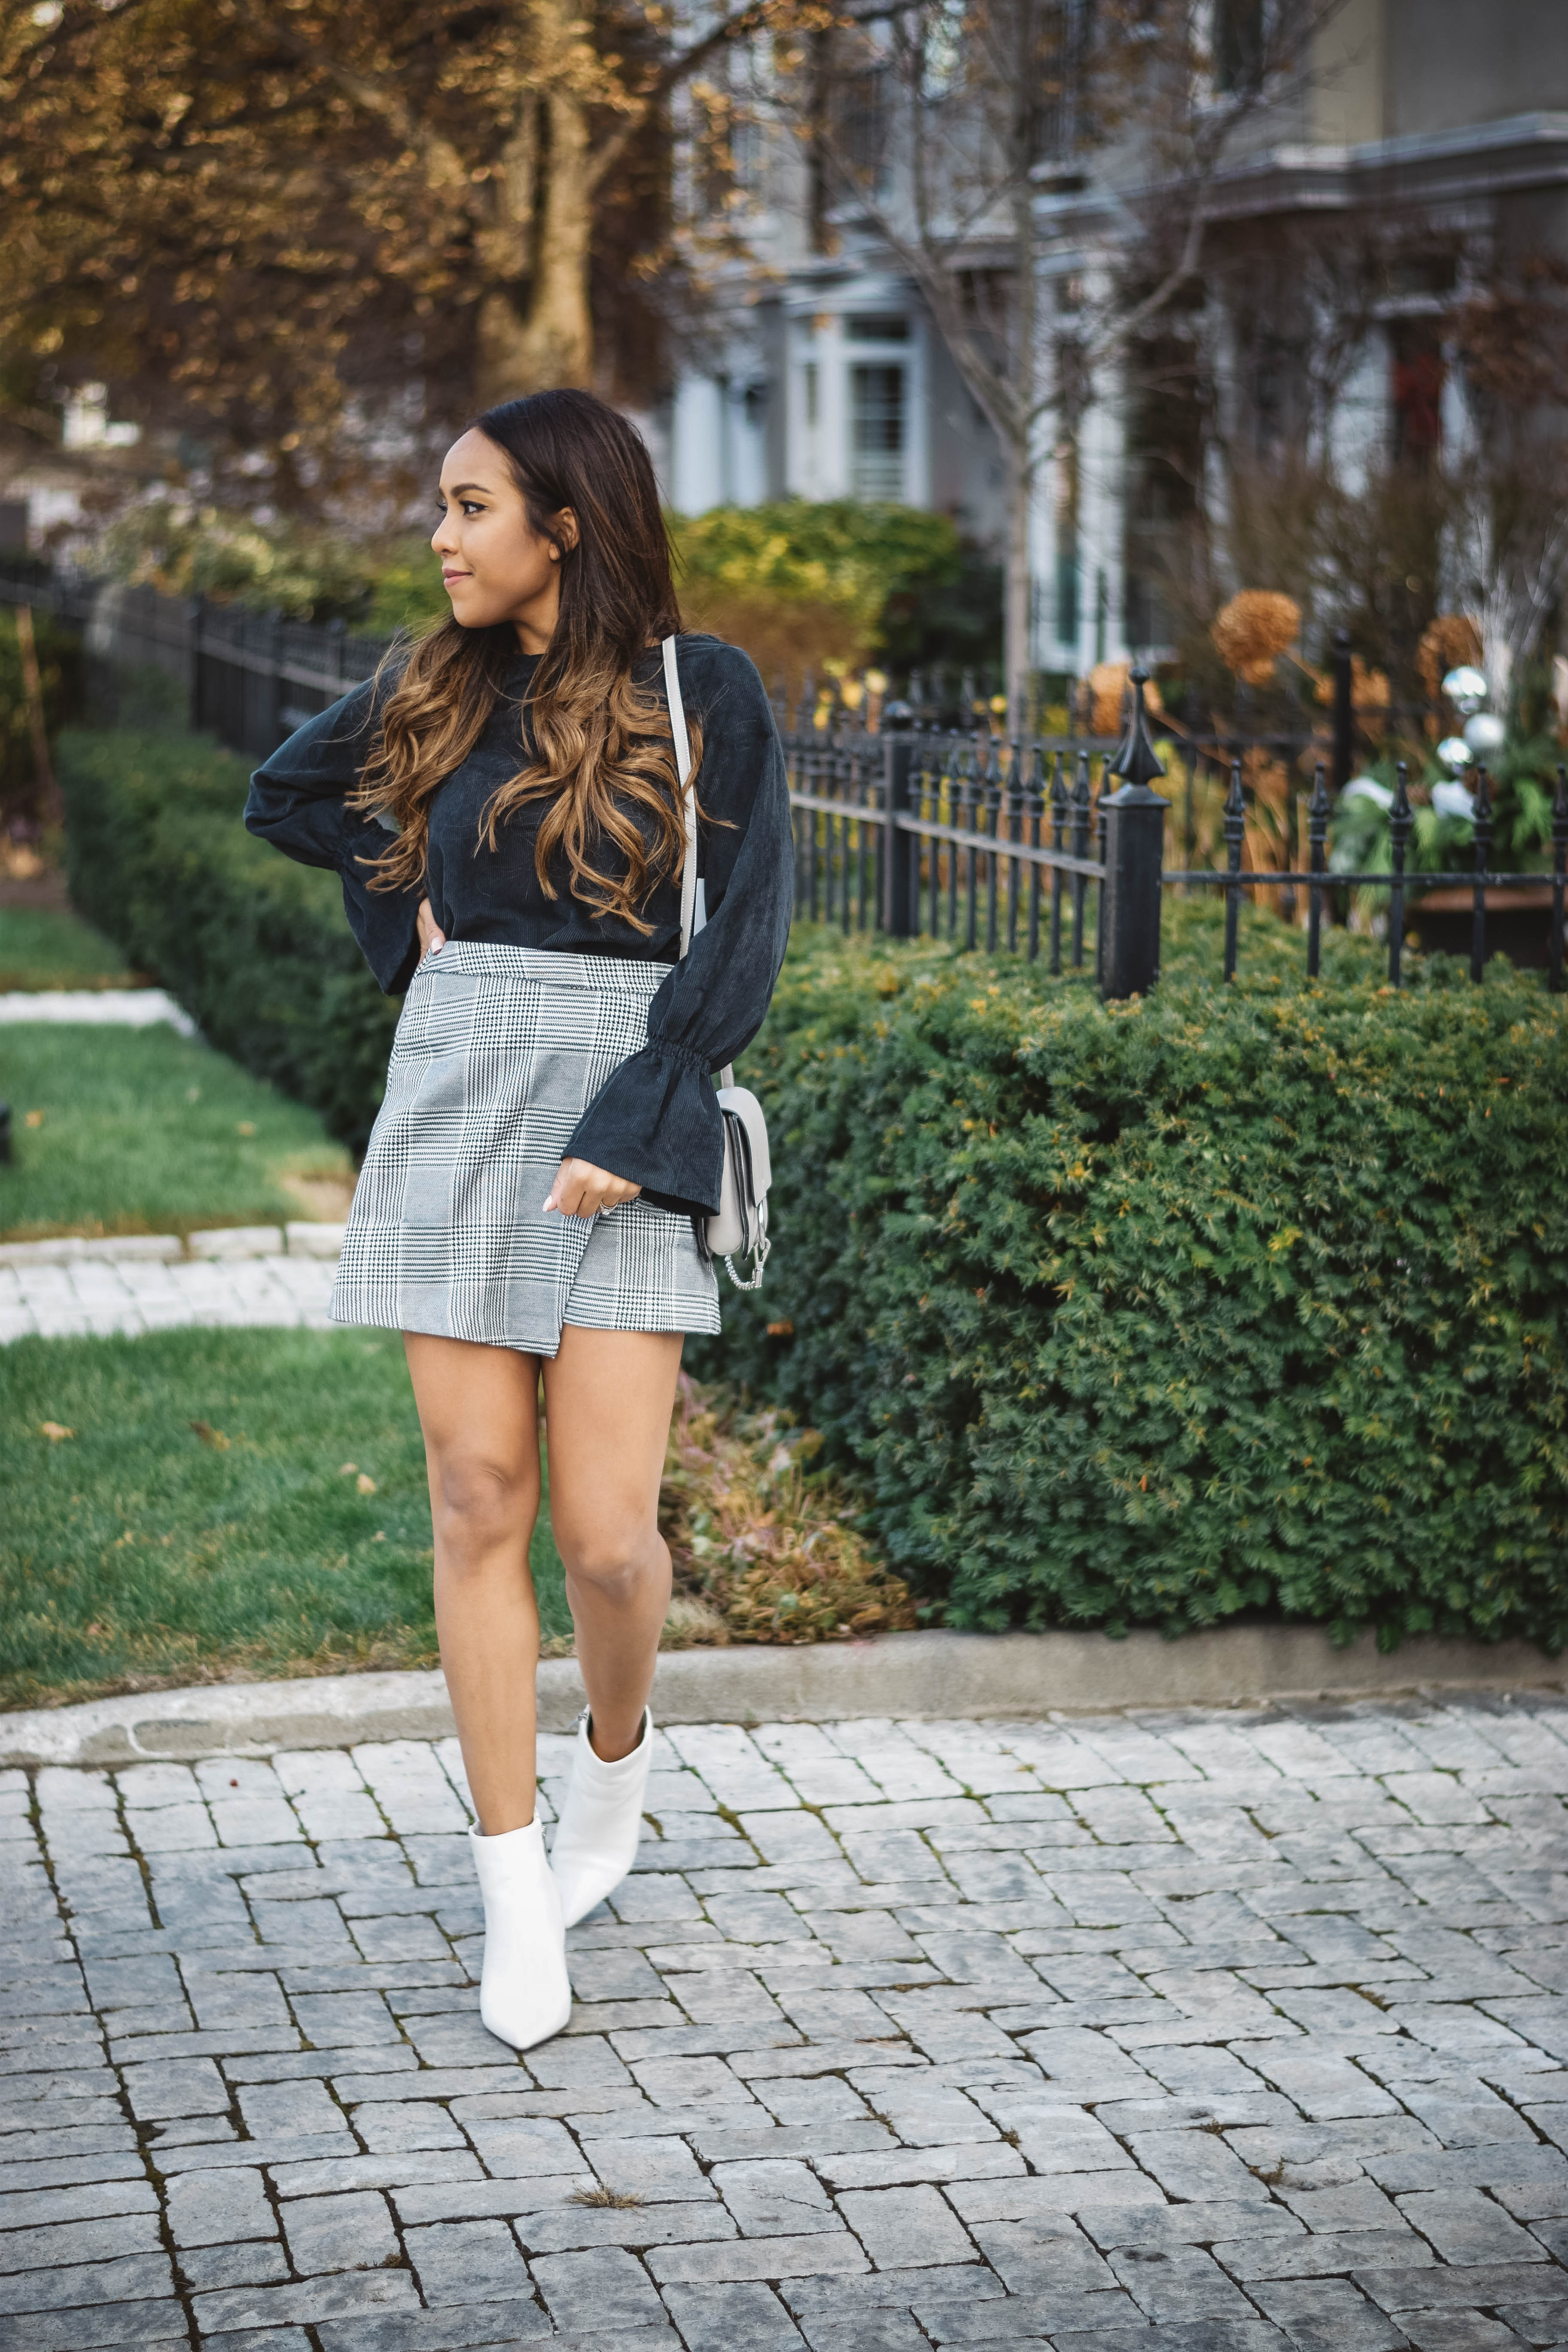 Fashion Blogger Lauren Sheriff of Basic Babe in Plaid Skirt from Shop Basic Babe, Corduroy Bell Sleeve Top from Shop Basic Babe, Forever 21 Booties